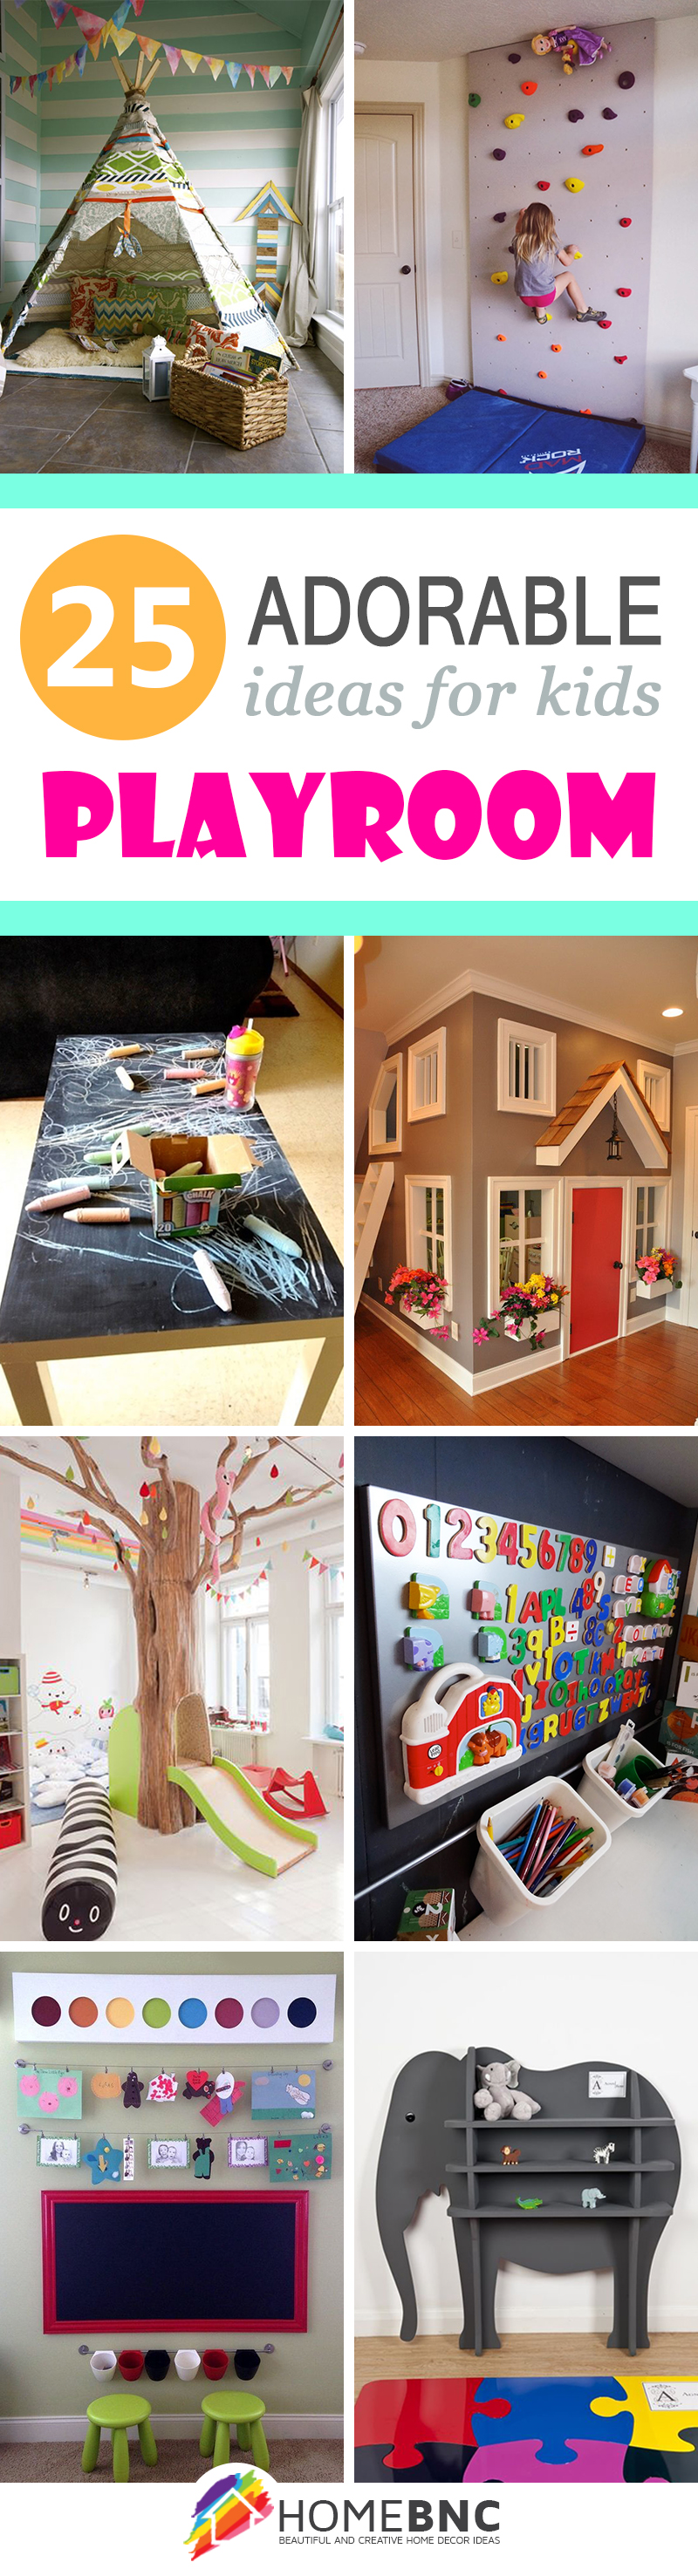 Kids Playroom Decorations